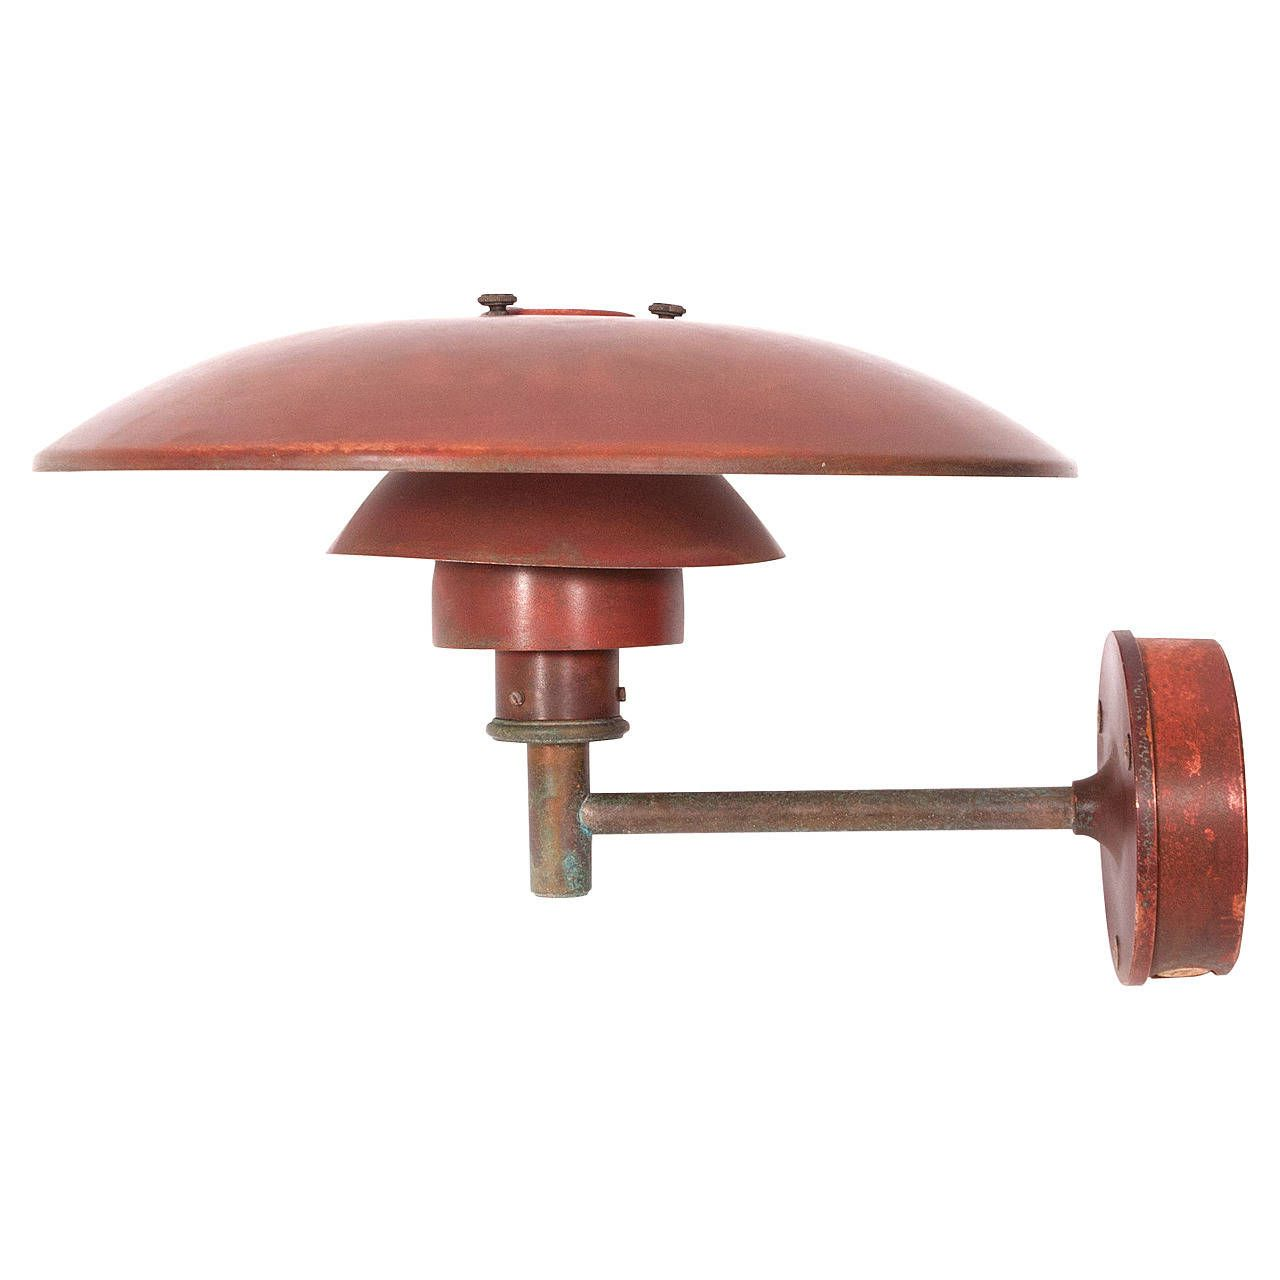 Poul Henningsen Solid Copper Outdoor Lamp 4 3 From A Unique Collection Of Antique